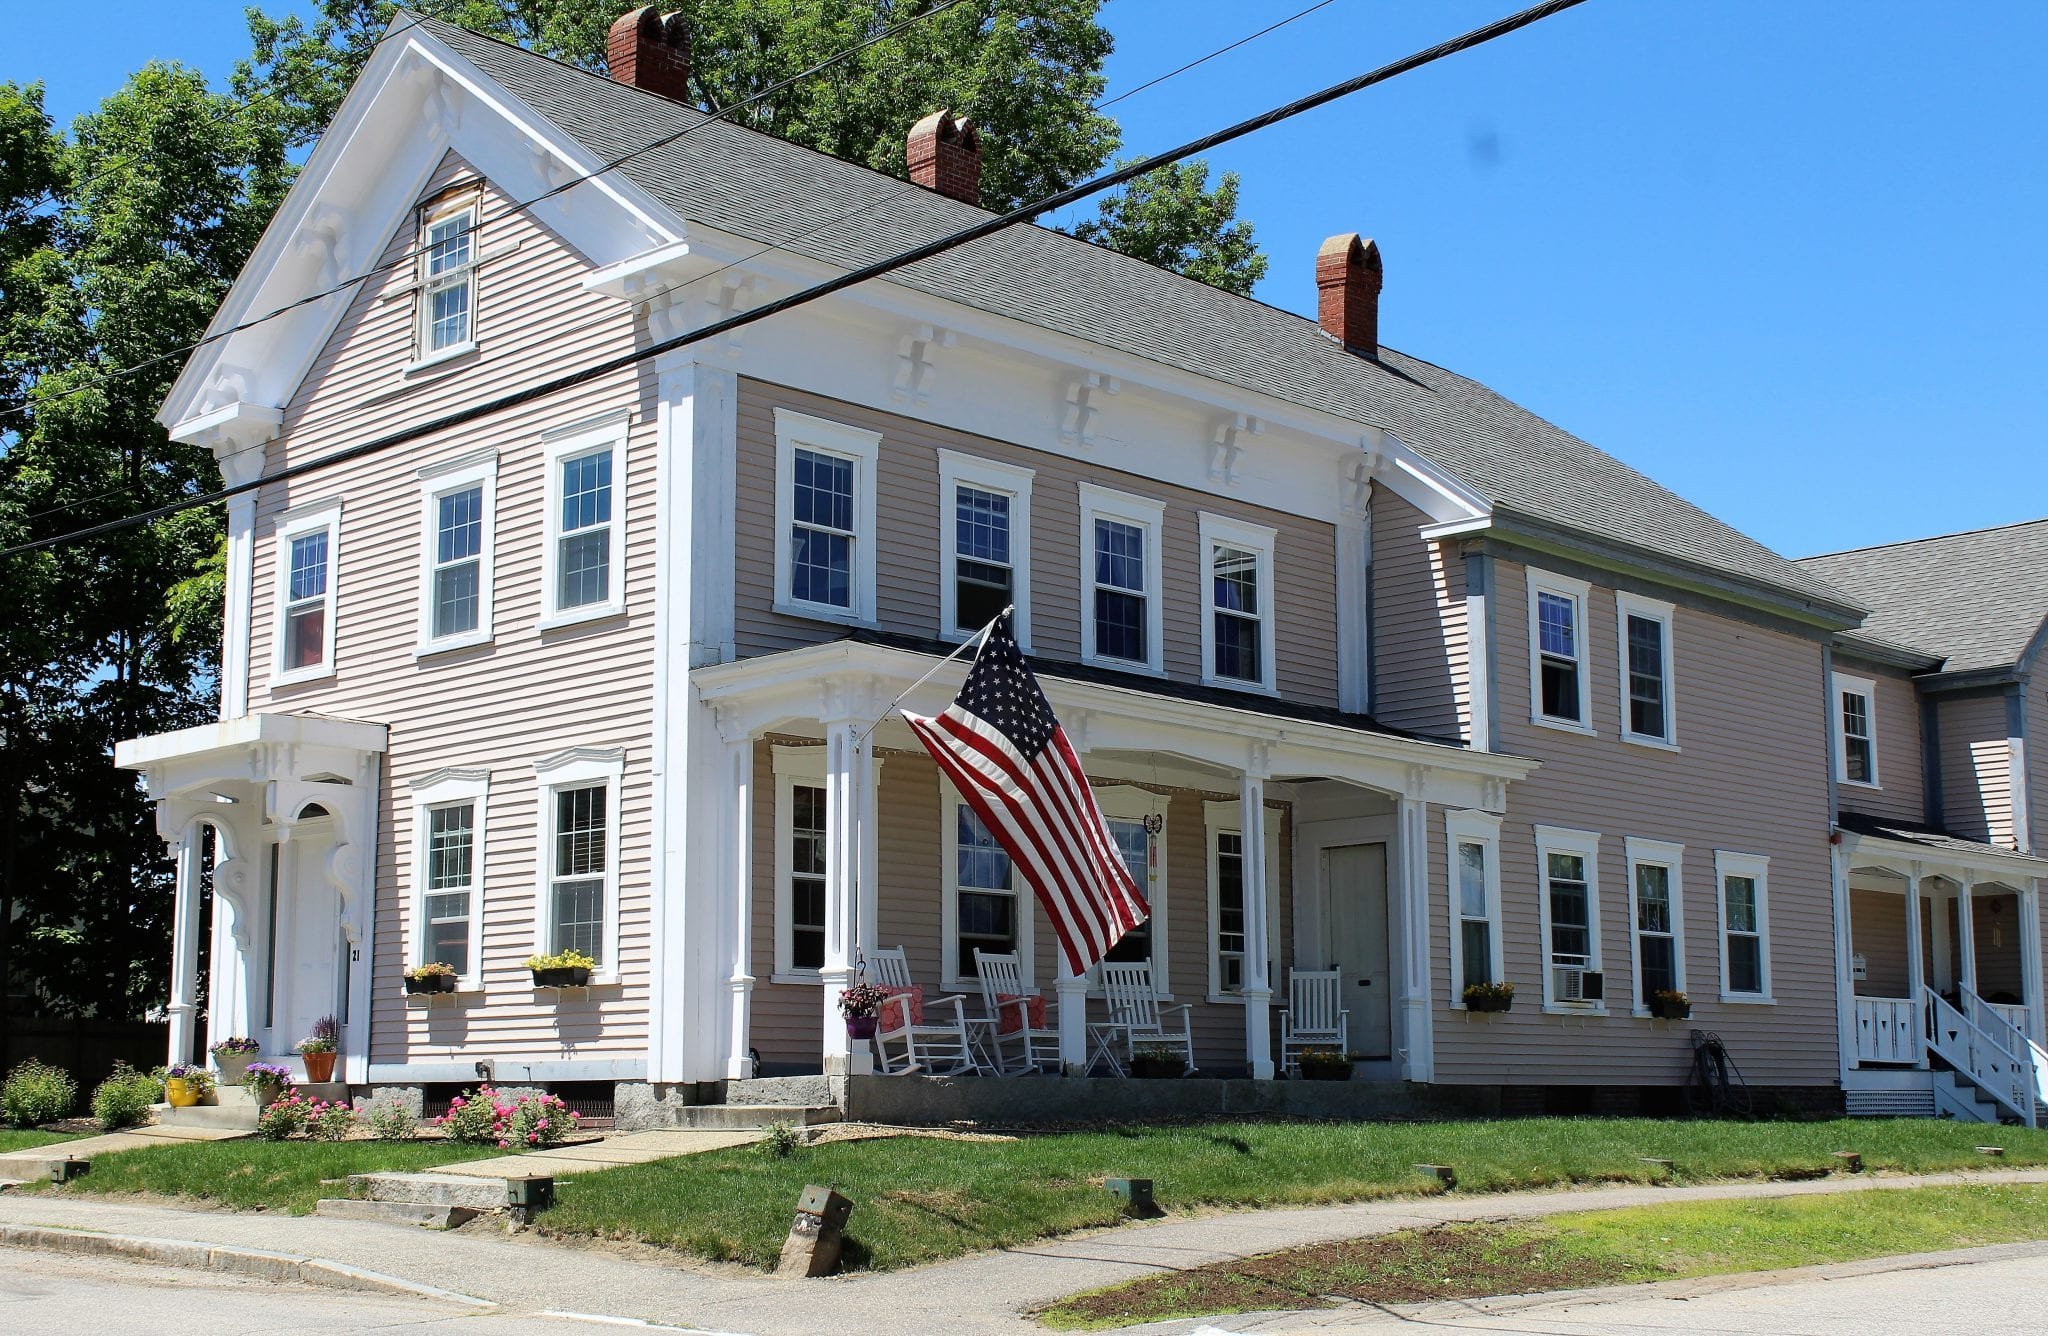 Lydia's House of Hope, Somersworth New Hampshire